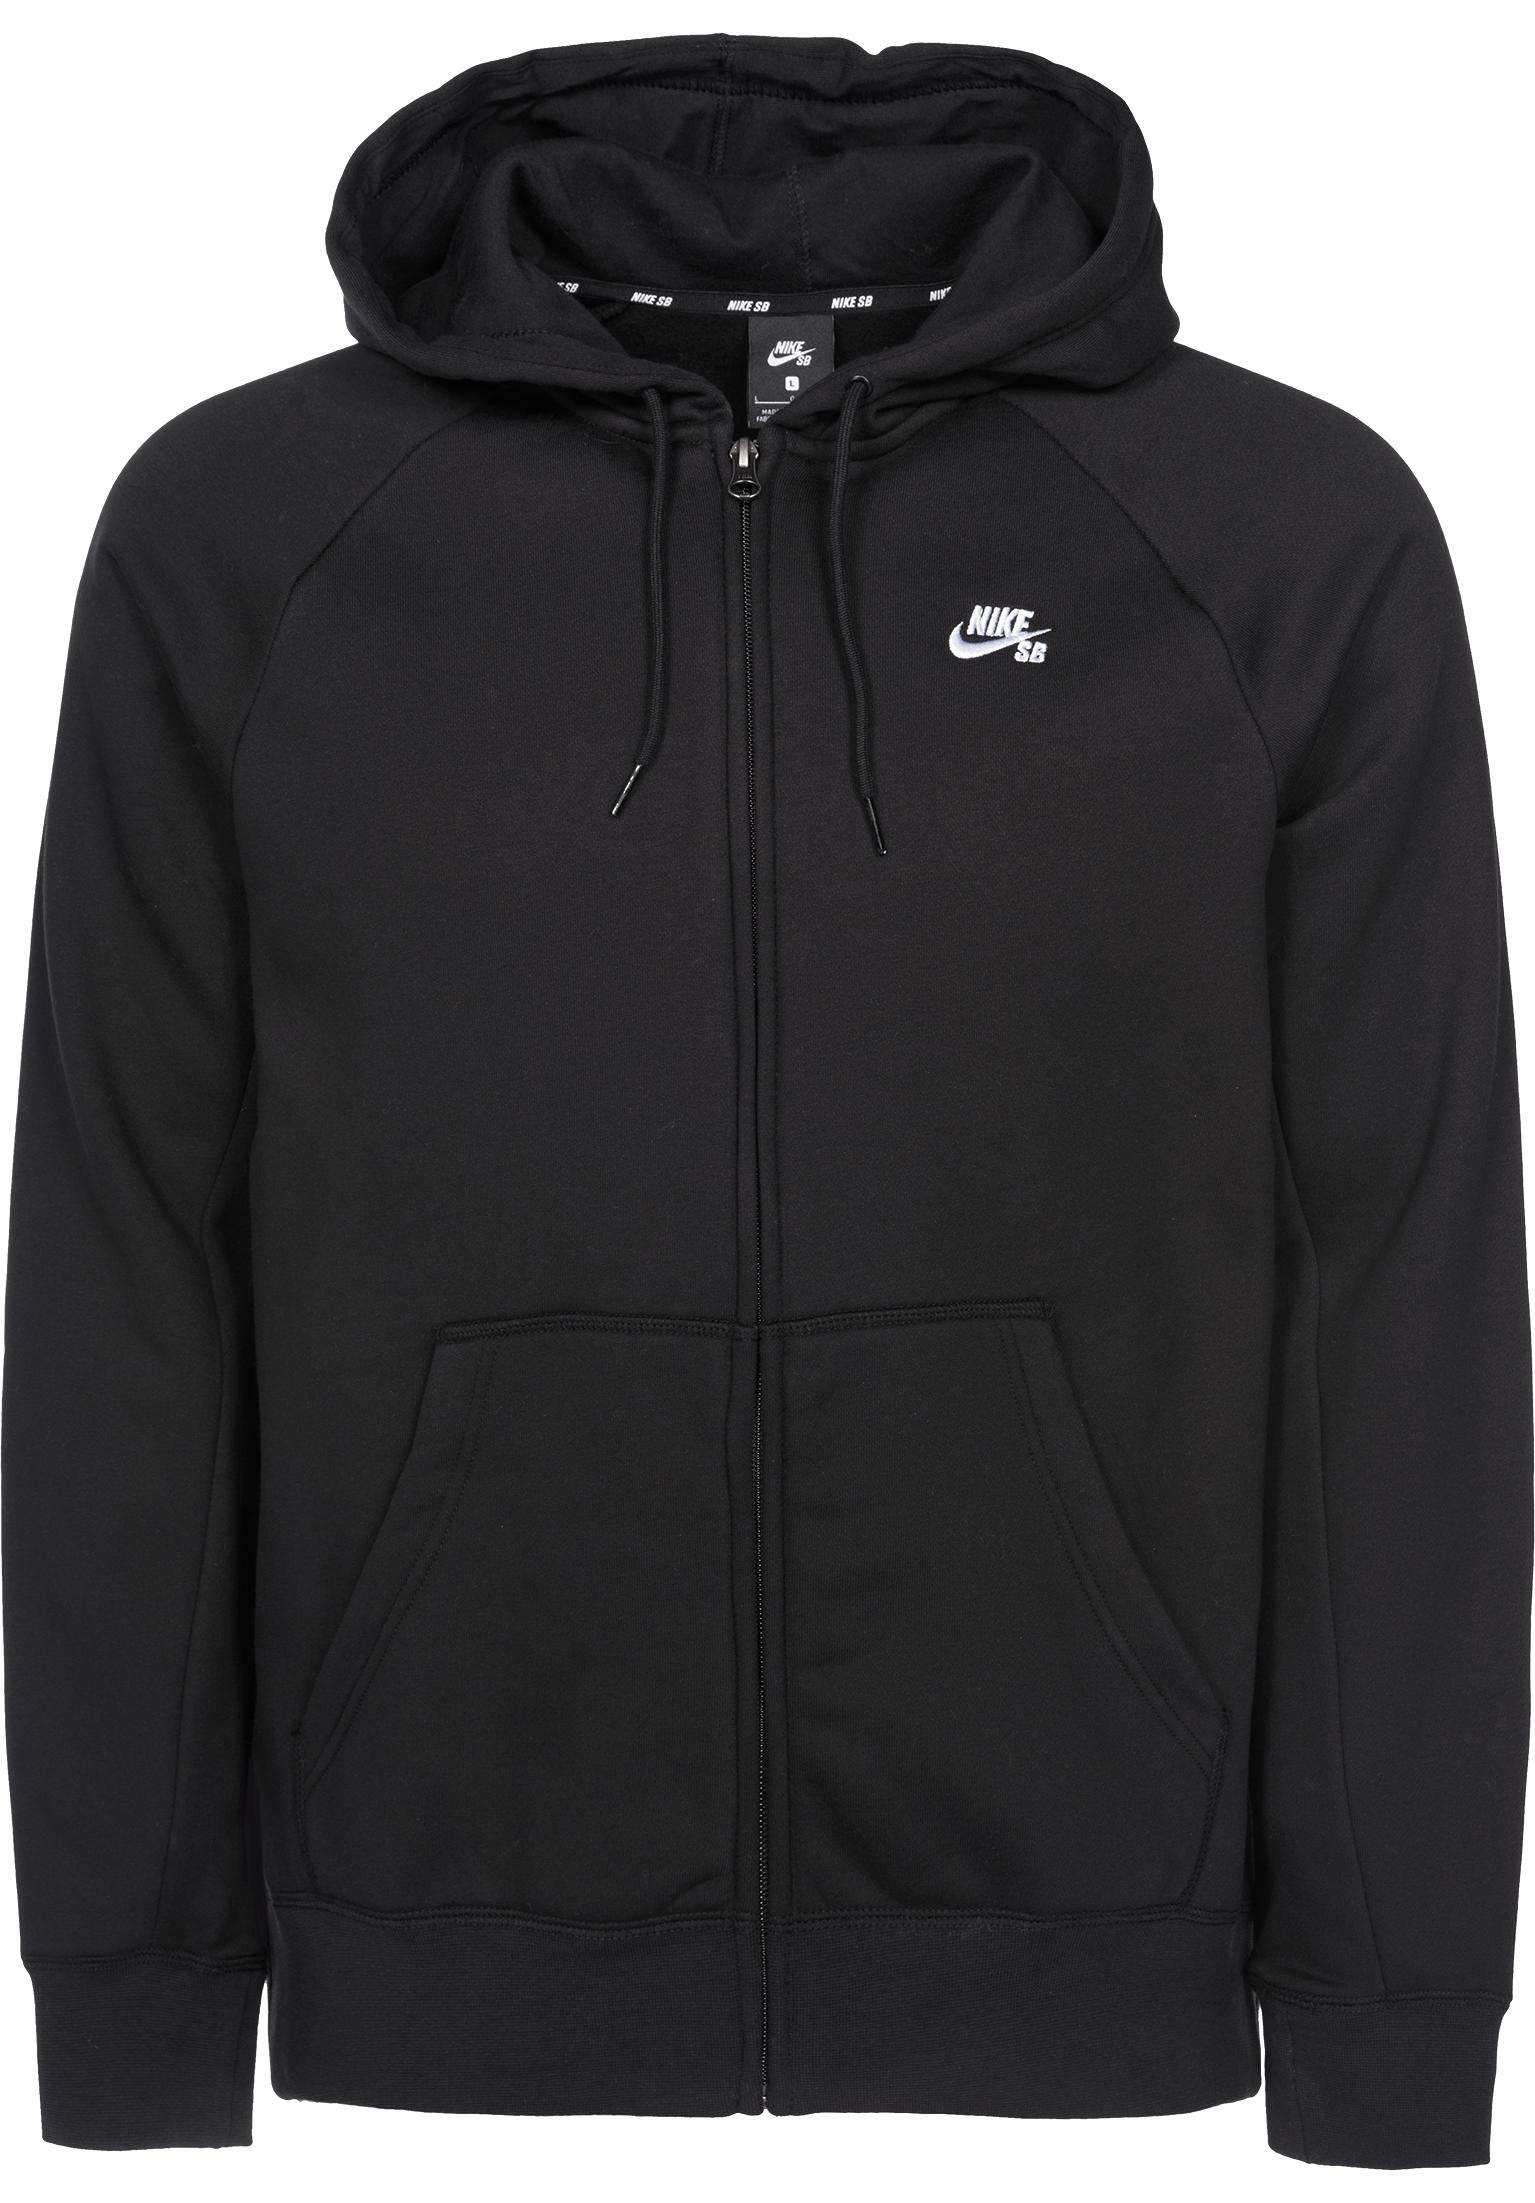 1be145bbe351 SB Icon Full Zip Nike SB Zip Hoodies in black-white for Men